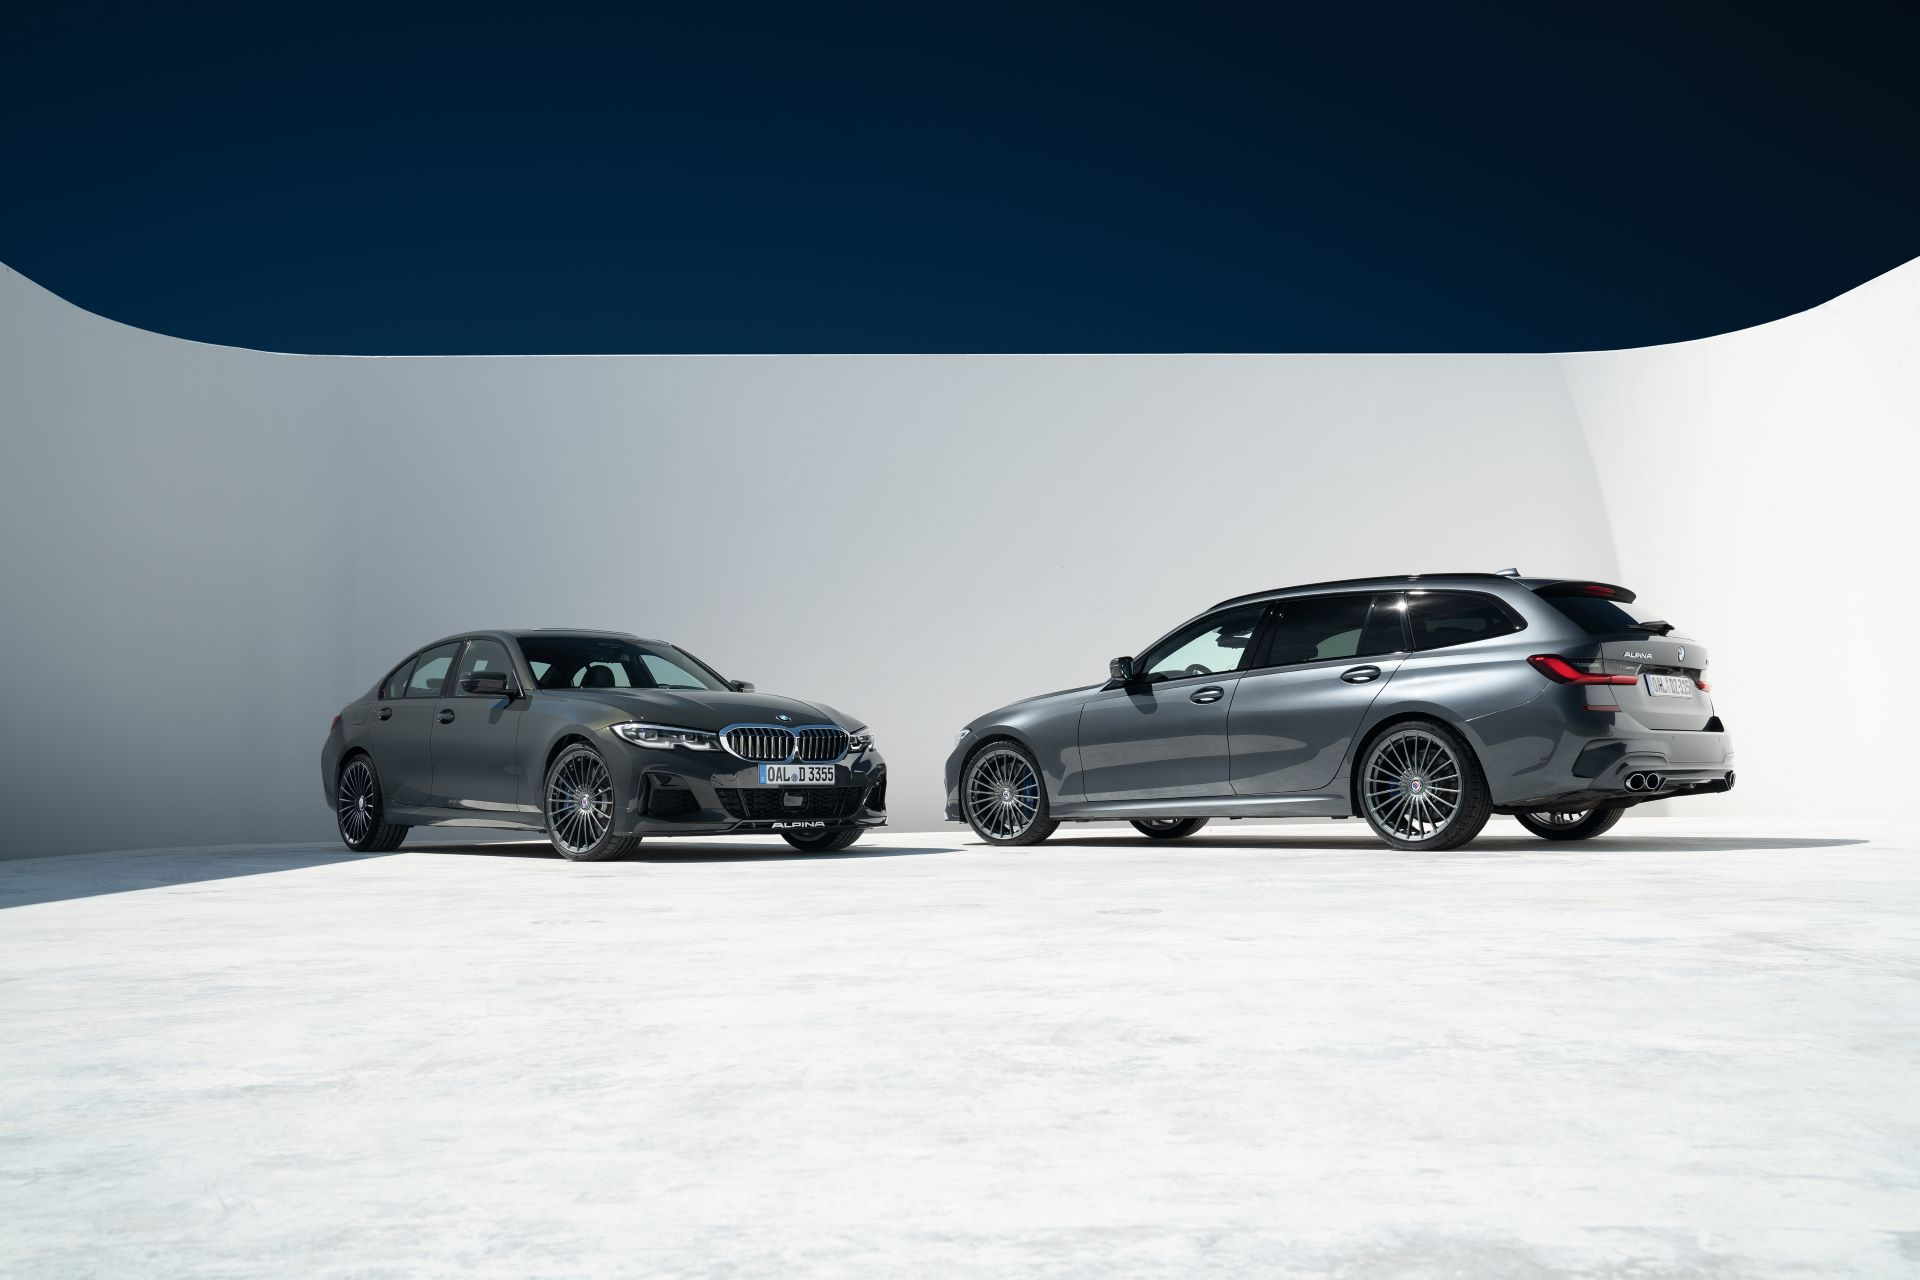 The new BMW ALPINA D3 S Models 1